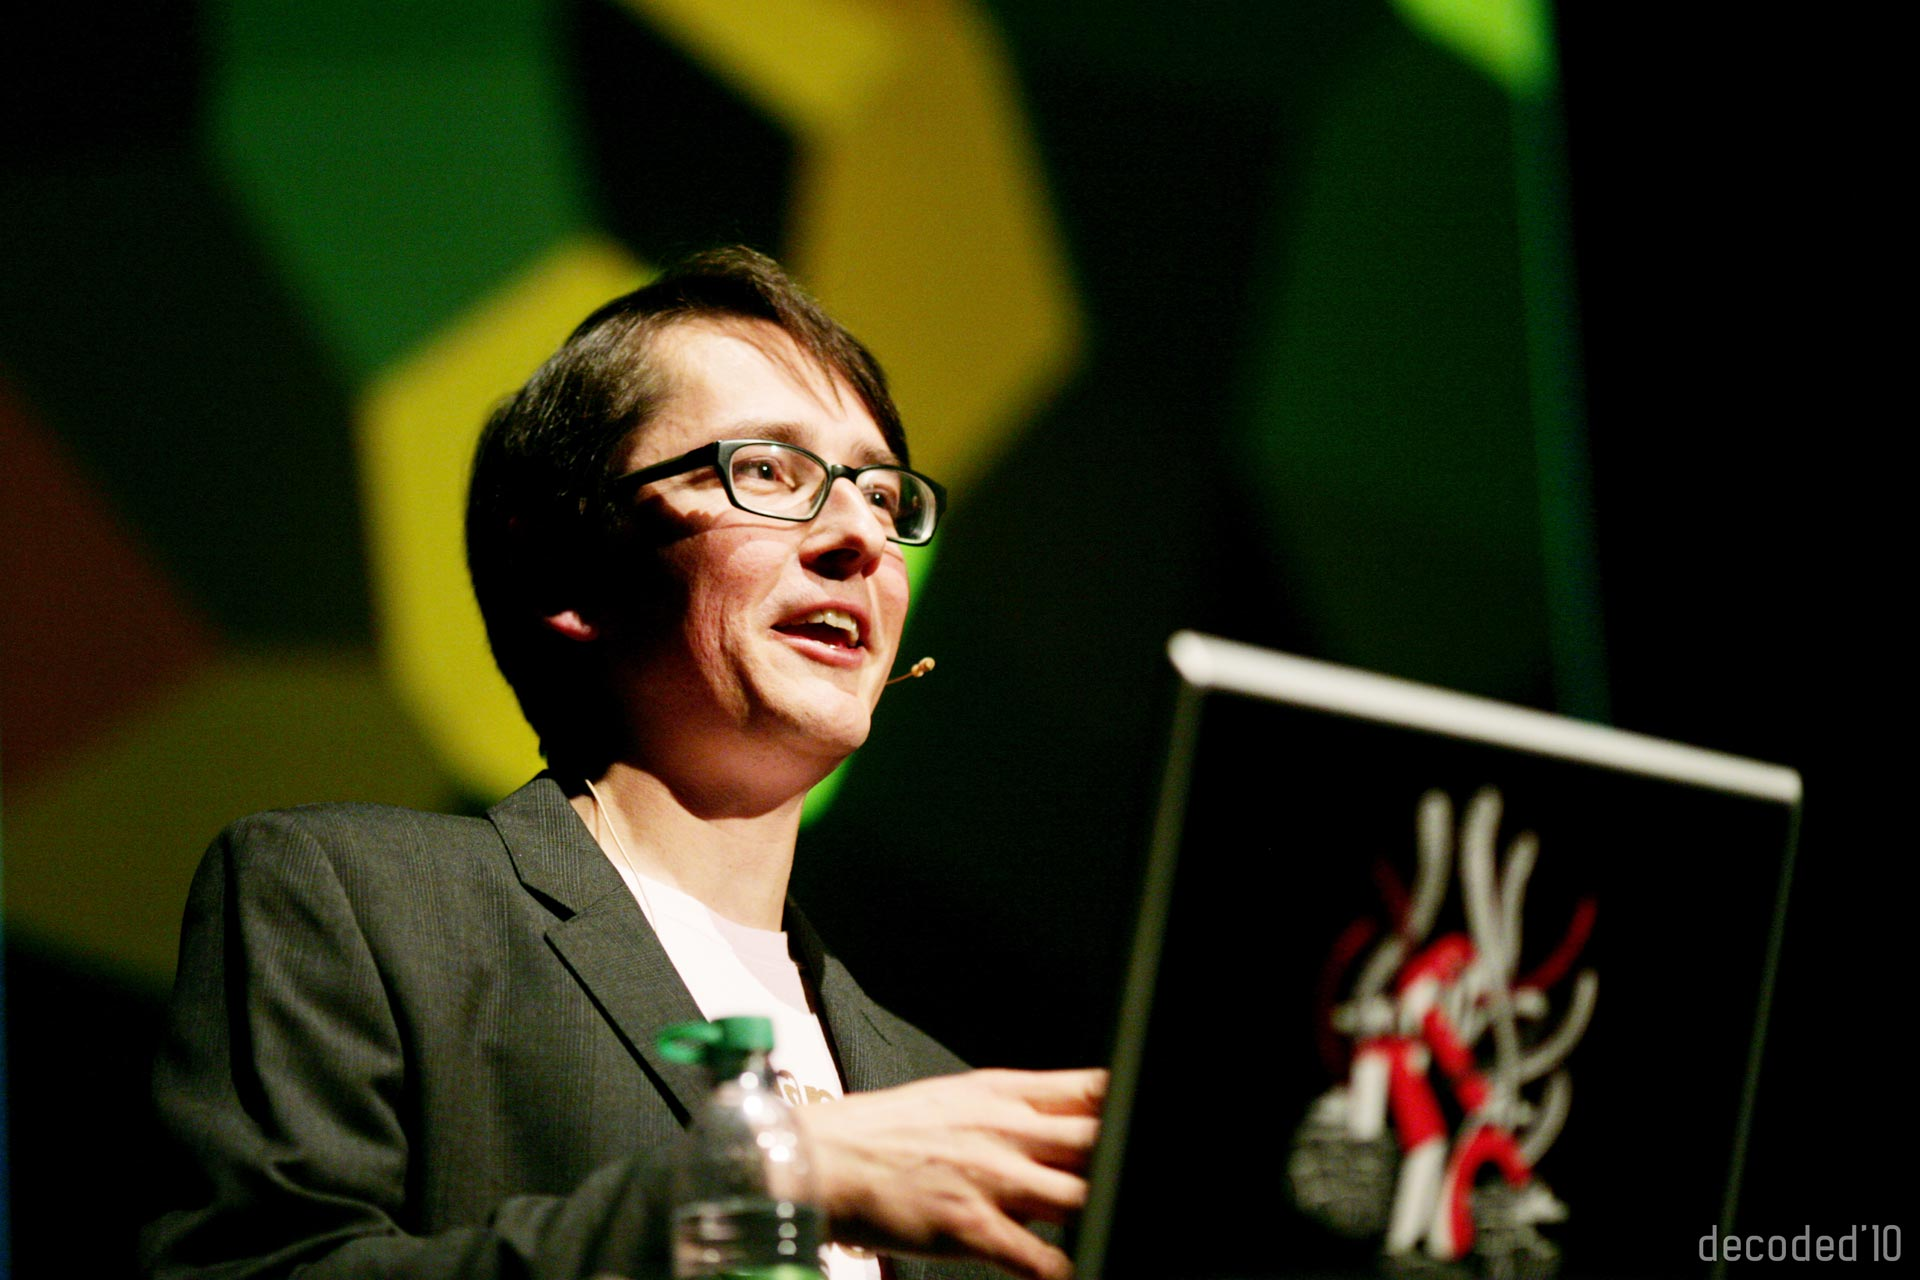 Mario Klingemann speaking at the Decoded Conference in 2010 in Munich, Germany. Image: Wikipedia